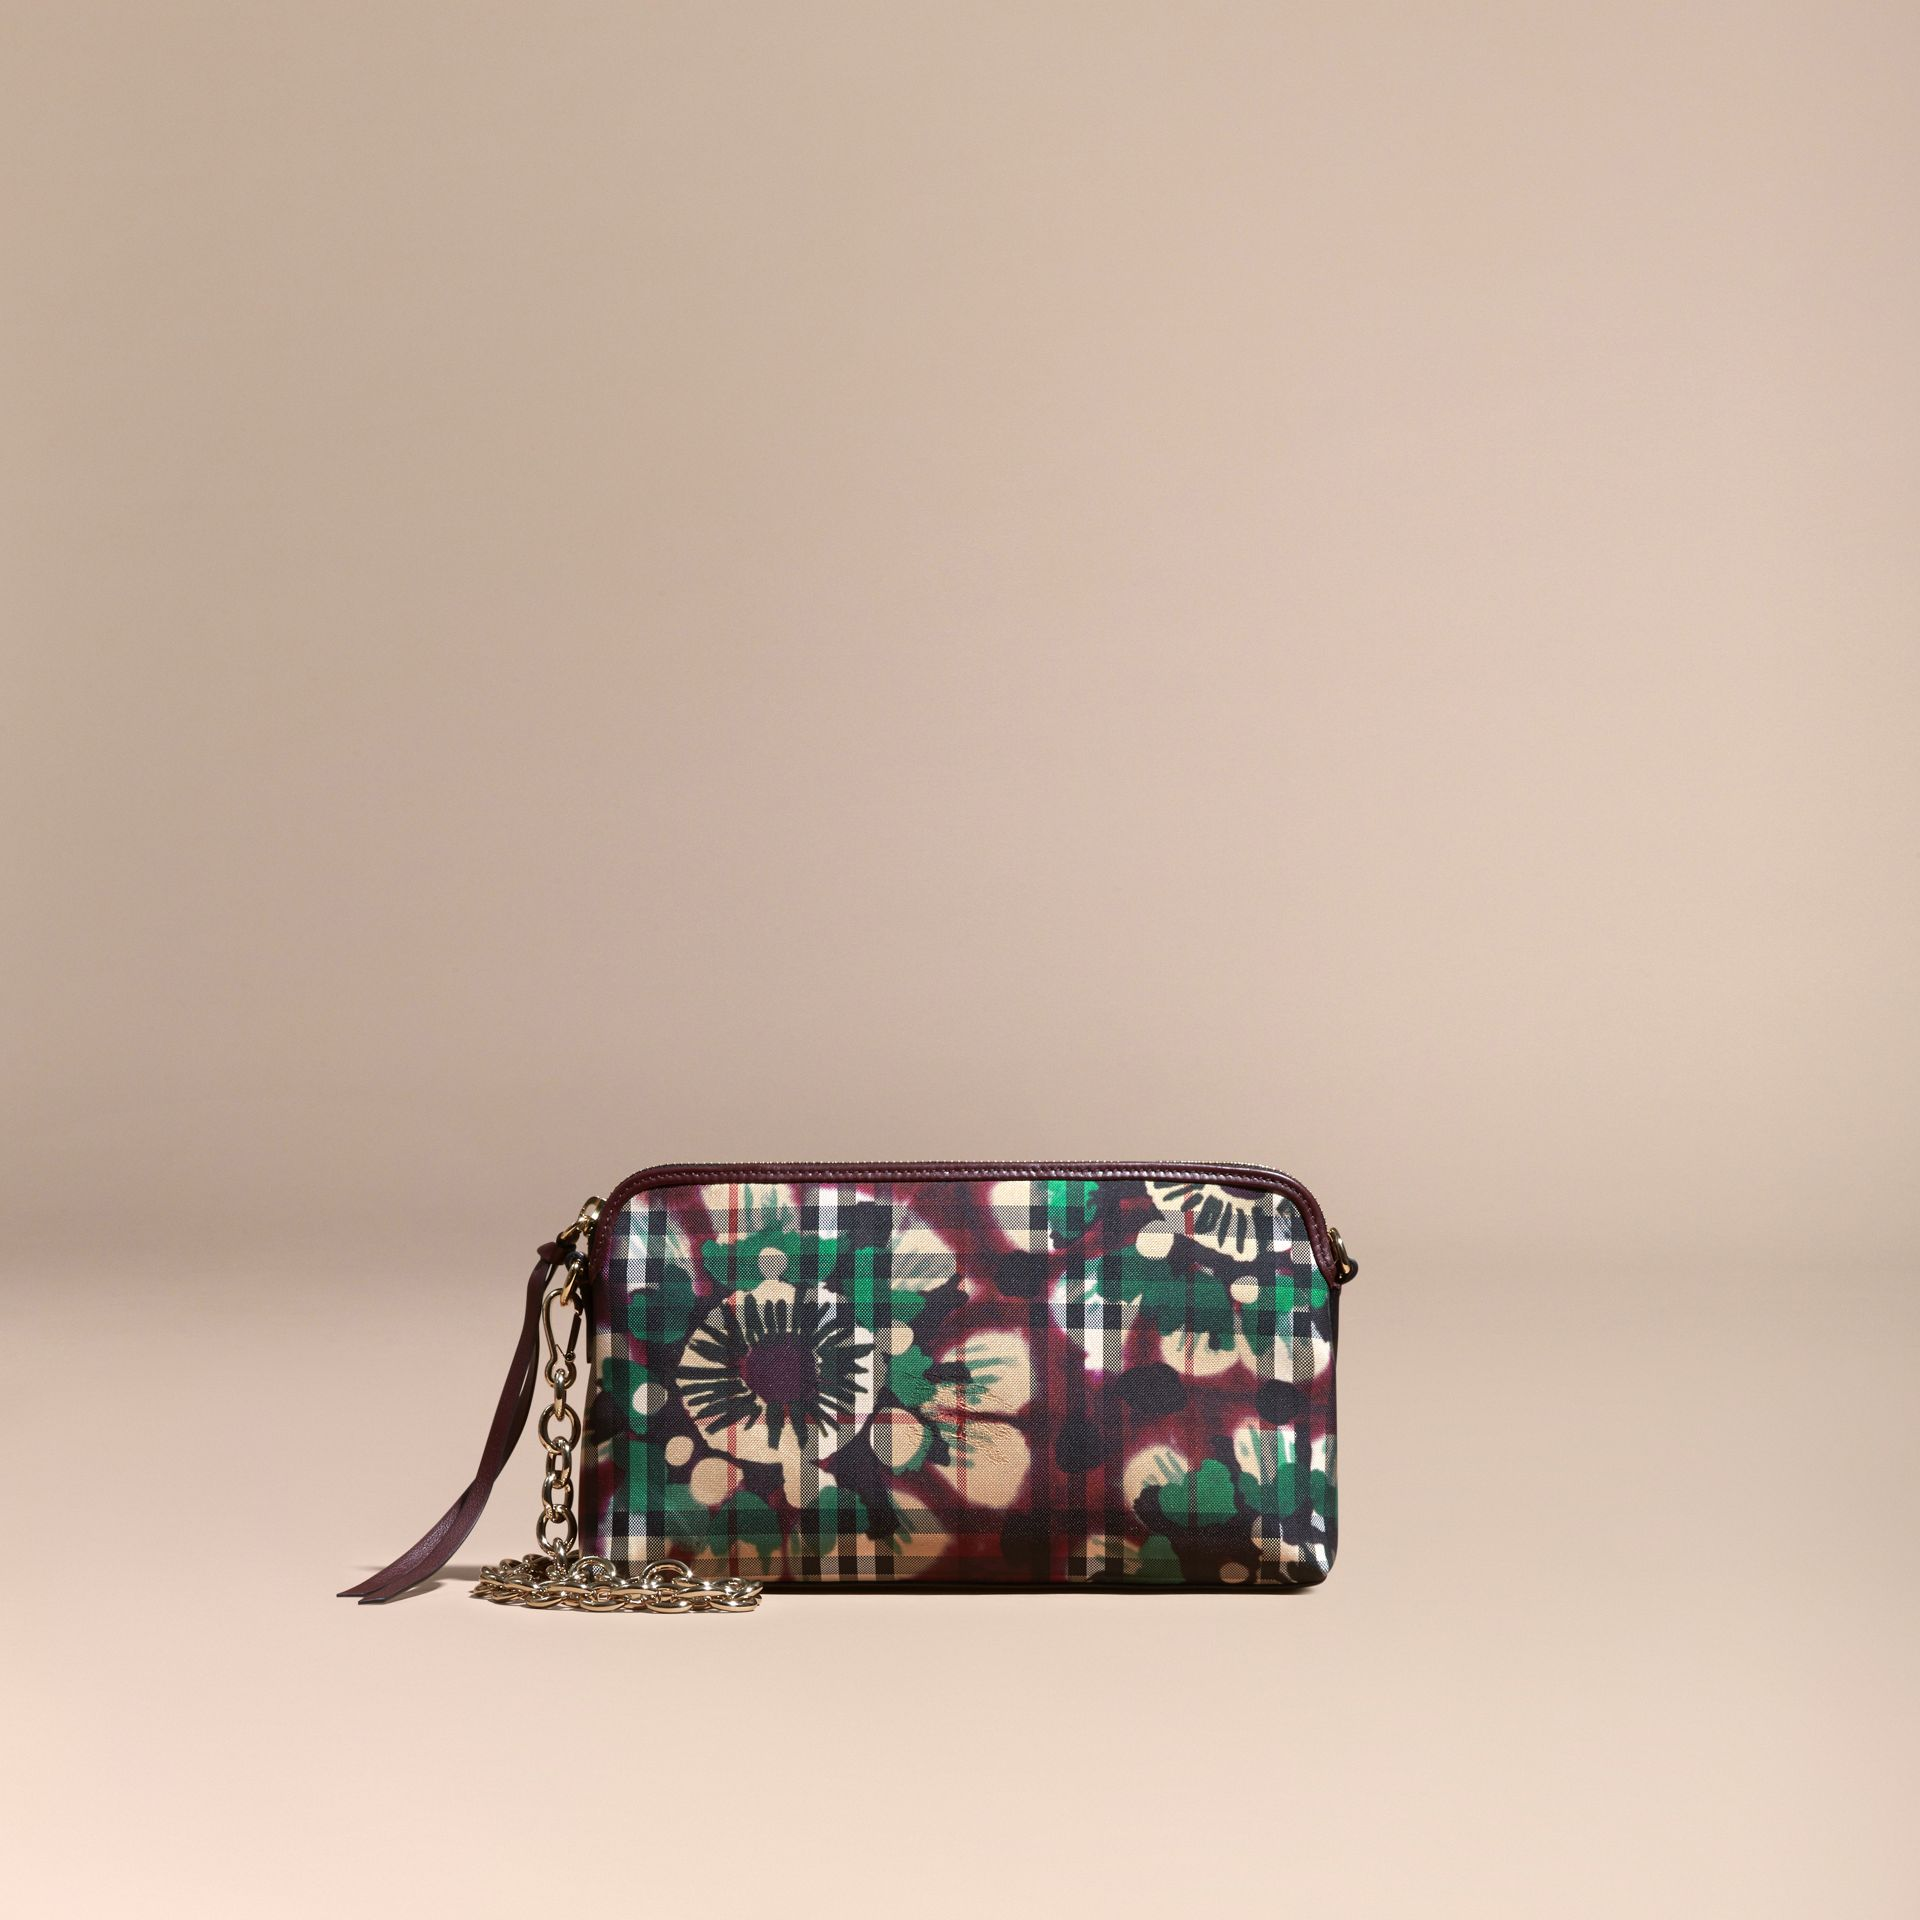 Deep claret Tie-dye Print Horseferry Check and Leather Clutch Bag Deep Claret - gallery image 8